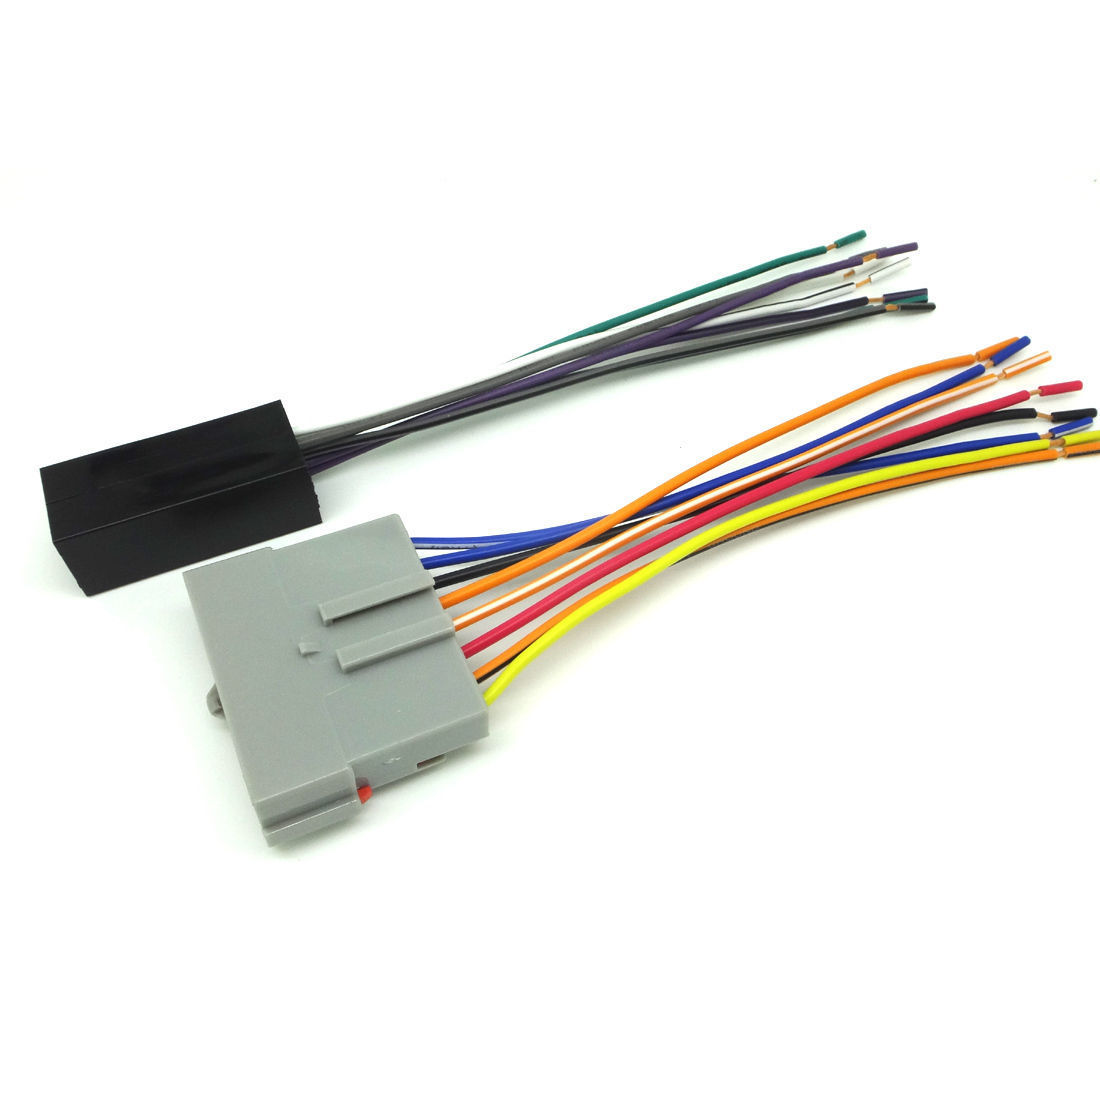 hight resolution of aftermarket car stereo wiring harness aftermarket stereo wiring harness aftermarket stereo wire diagram aftermarket wire harness